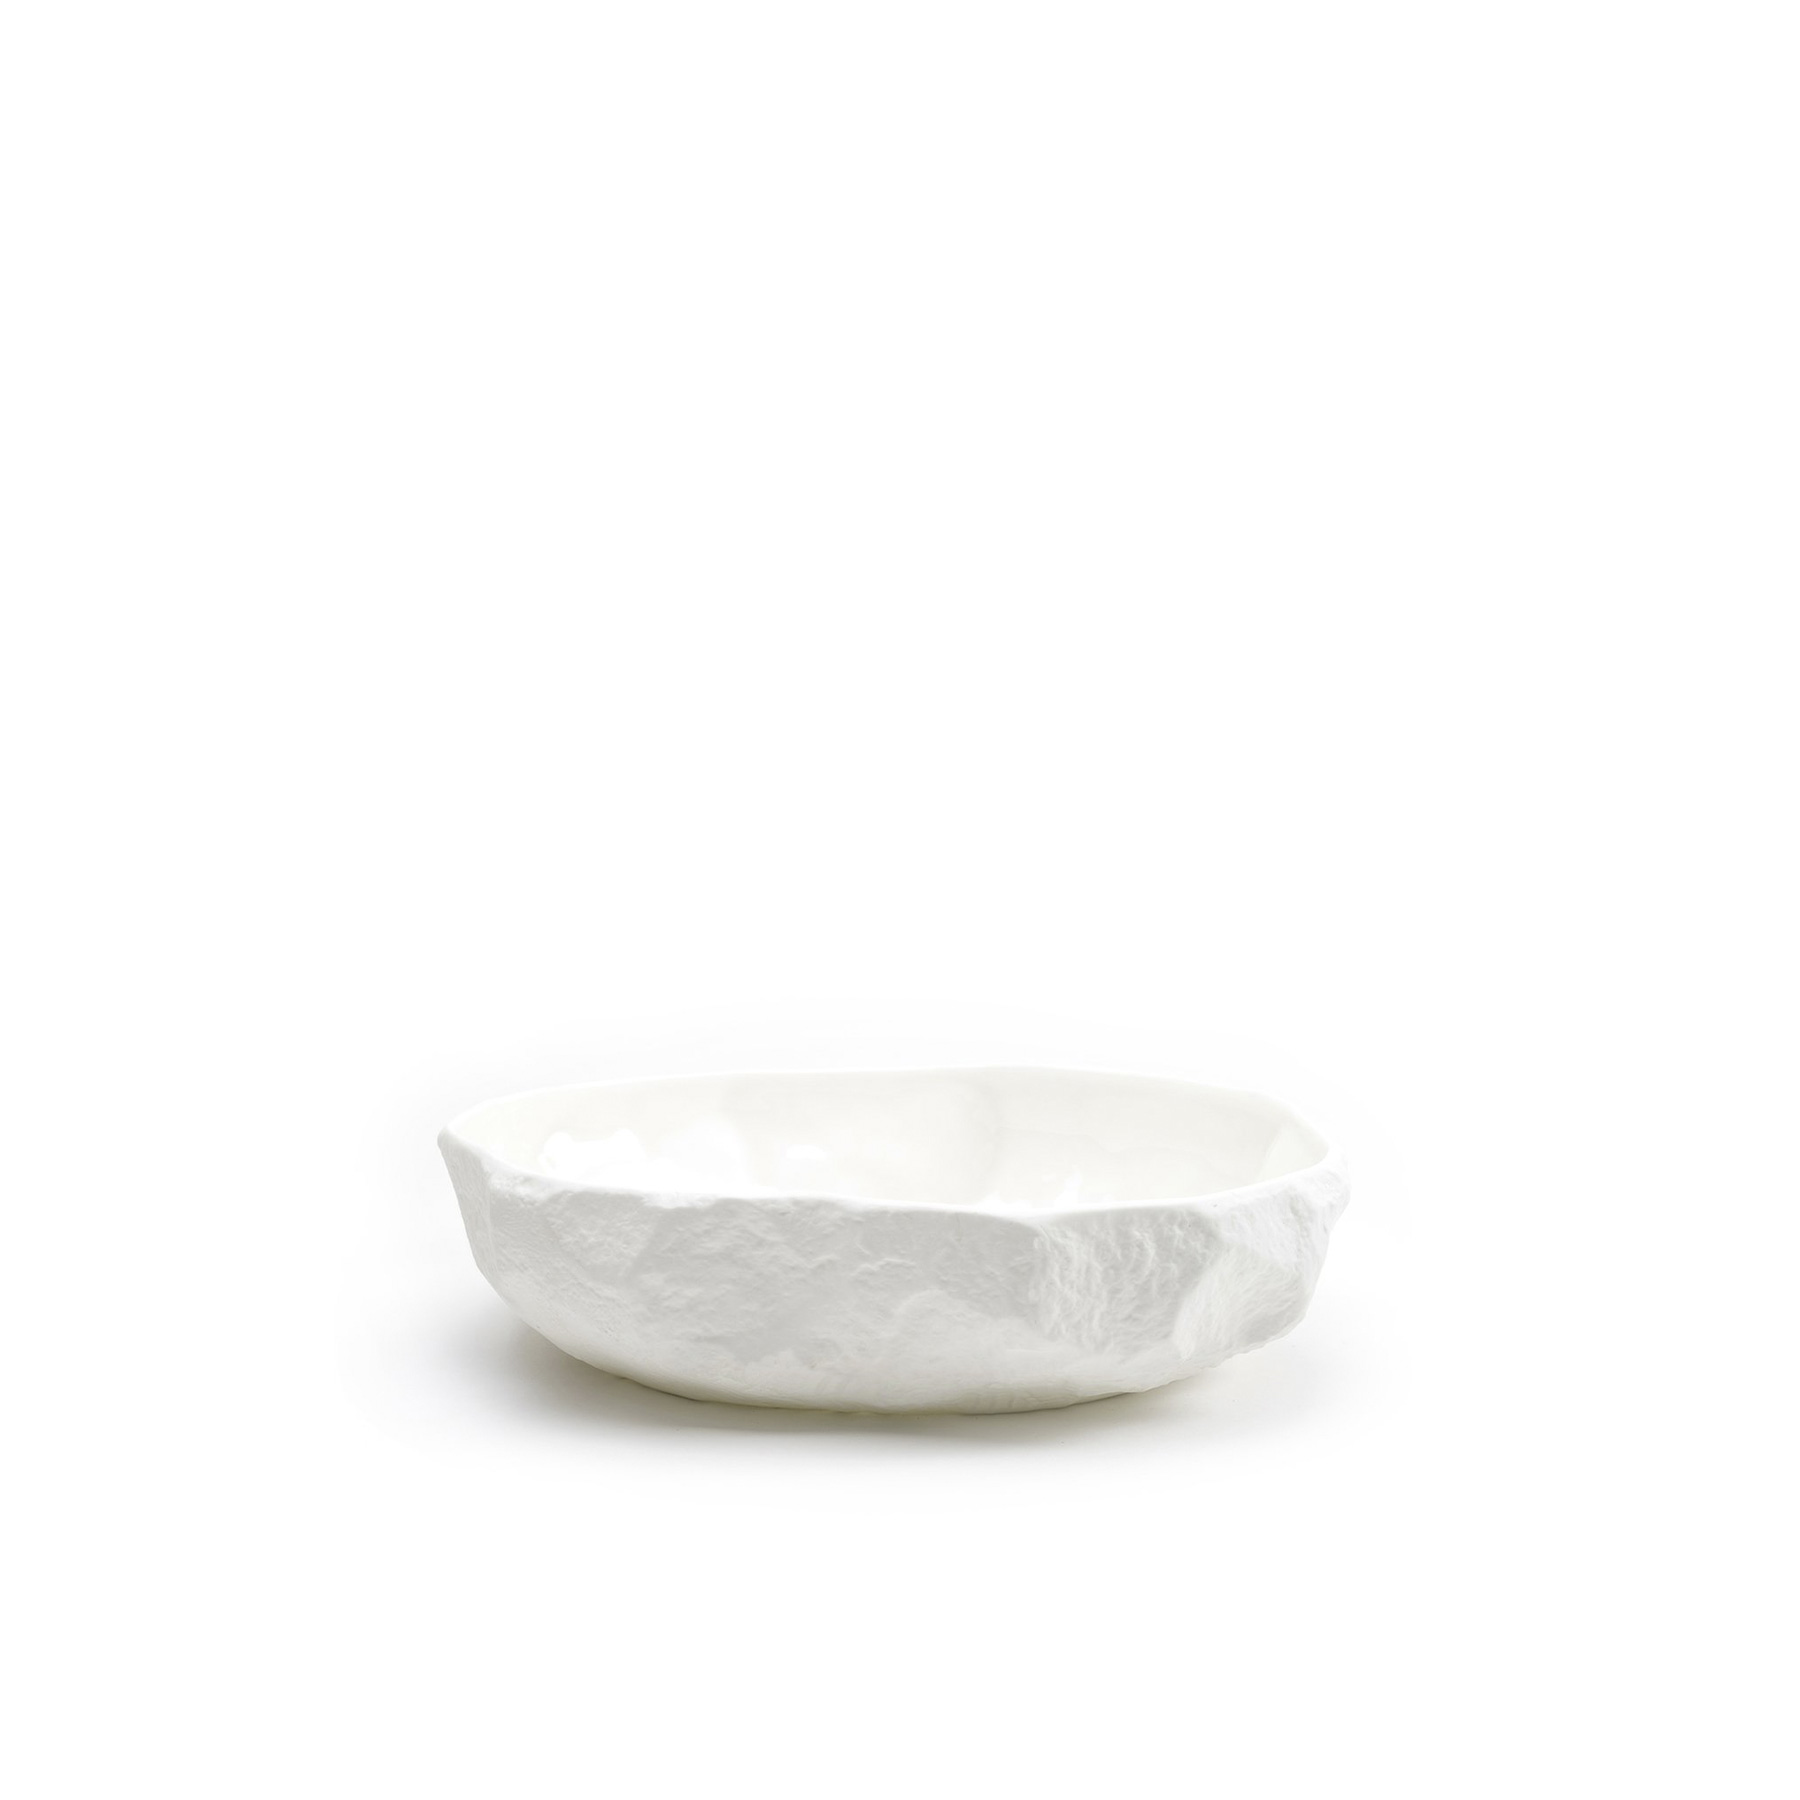 Crockery White Large Flat Bowl - A collection of fine bone china tableware slip-cast from plaster models carved by hand, with glazed interior for functionality and raw exterior reflecting the modest surface texture of the plaster original. The process of slip-casting begins with the creation of a three-dimensional model of the design known as a master by a professional model-maker, from which the production mould is cast. Crockery bypasses this process by placing the responsibility of both designer and model-maker in the hands of Max Lamb. Using the tools of a stone mason Max chips and carves a solid block of plaster to make a series of tableware, the design of each formed quite simply out of their own making. Microwave and dishwasher safe.  | Matter of Stuff